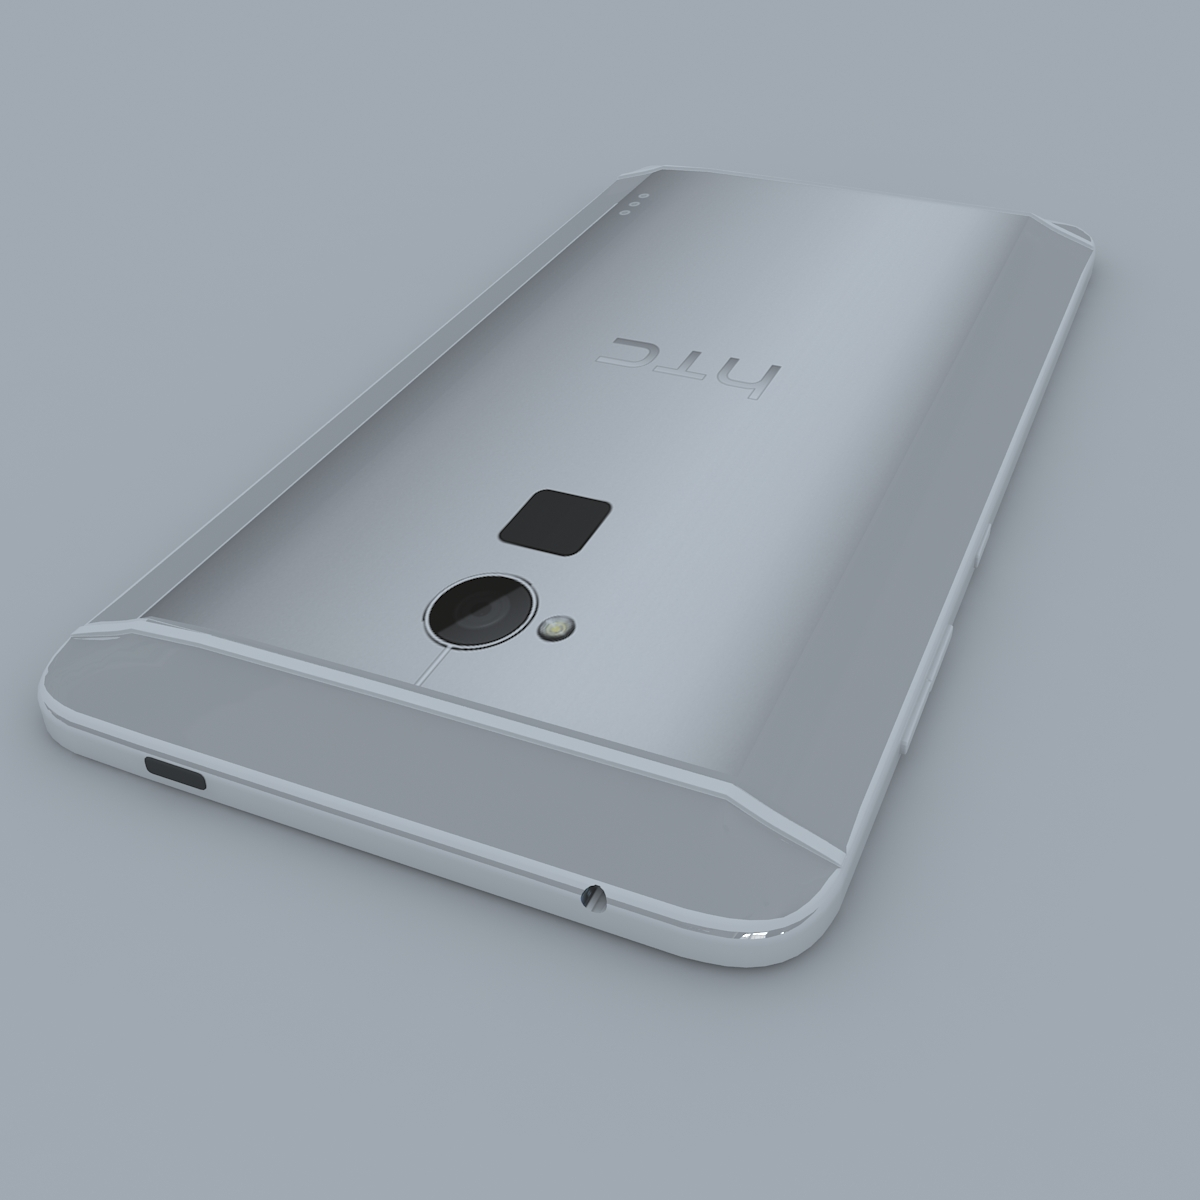 htc one max 3d model max c4d ma mb obj 158169